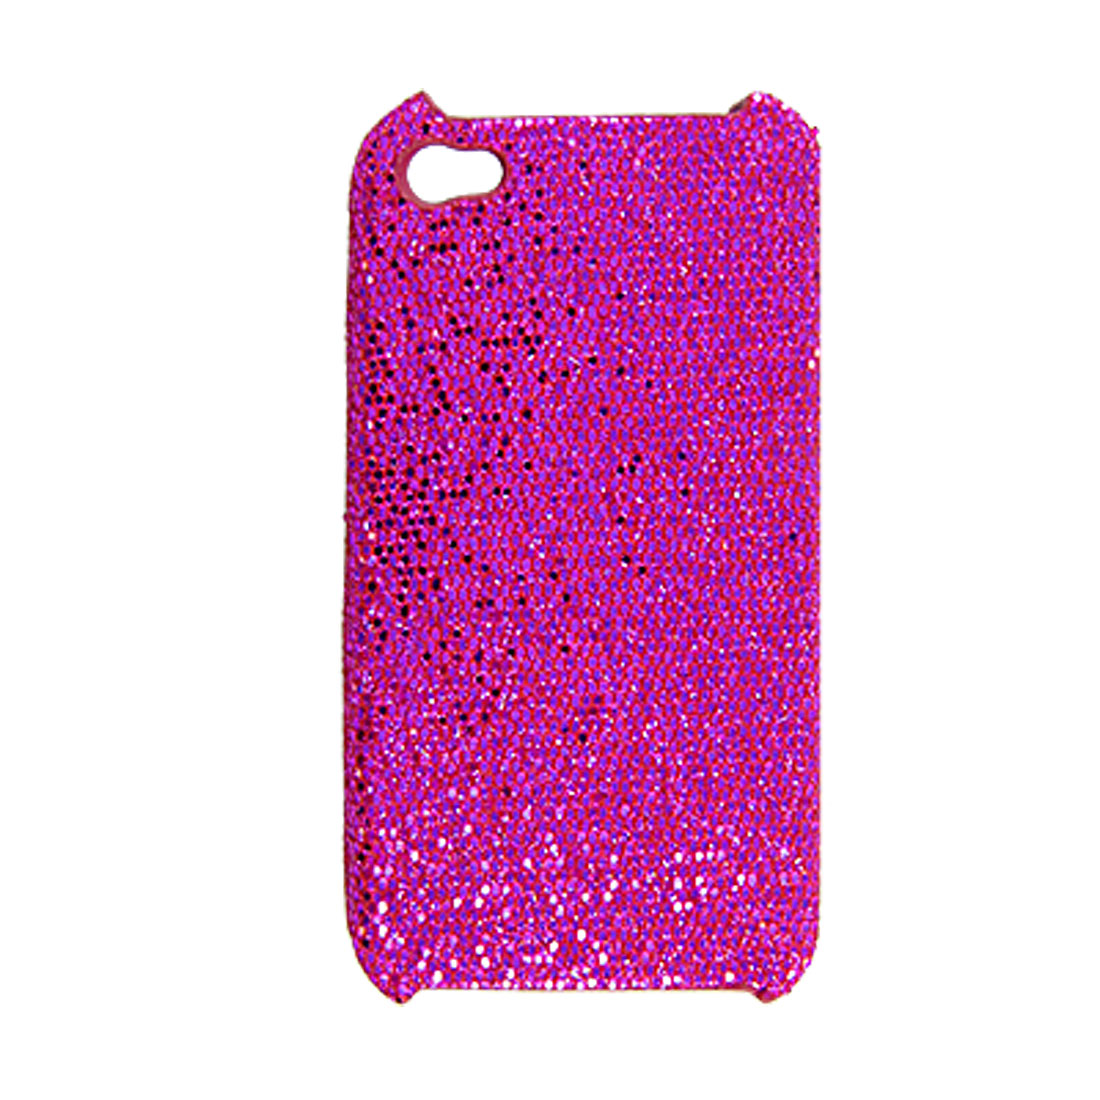 Hot Pink Twinkled Sequin Coated Plastic Back Cover for iPhone 4